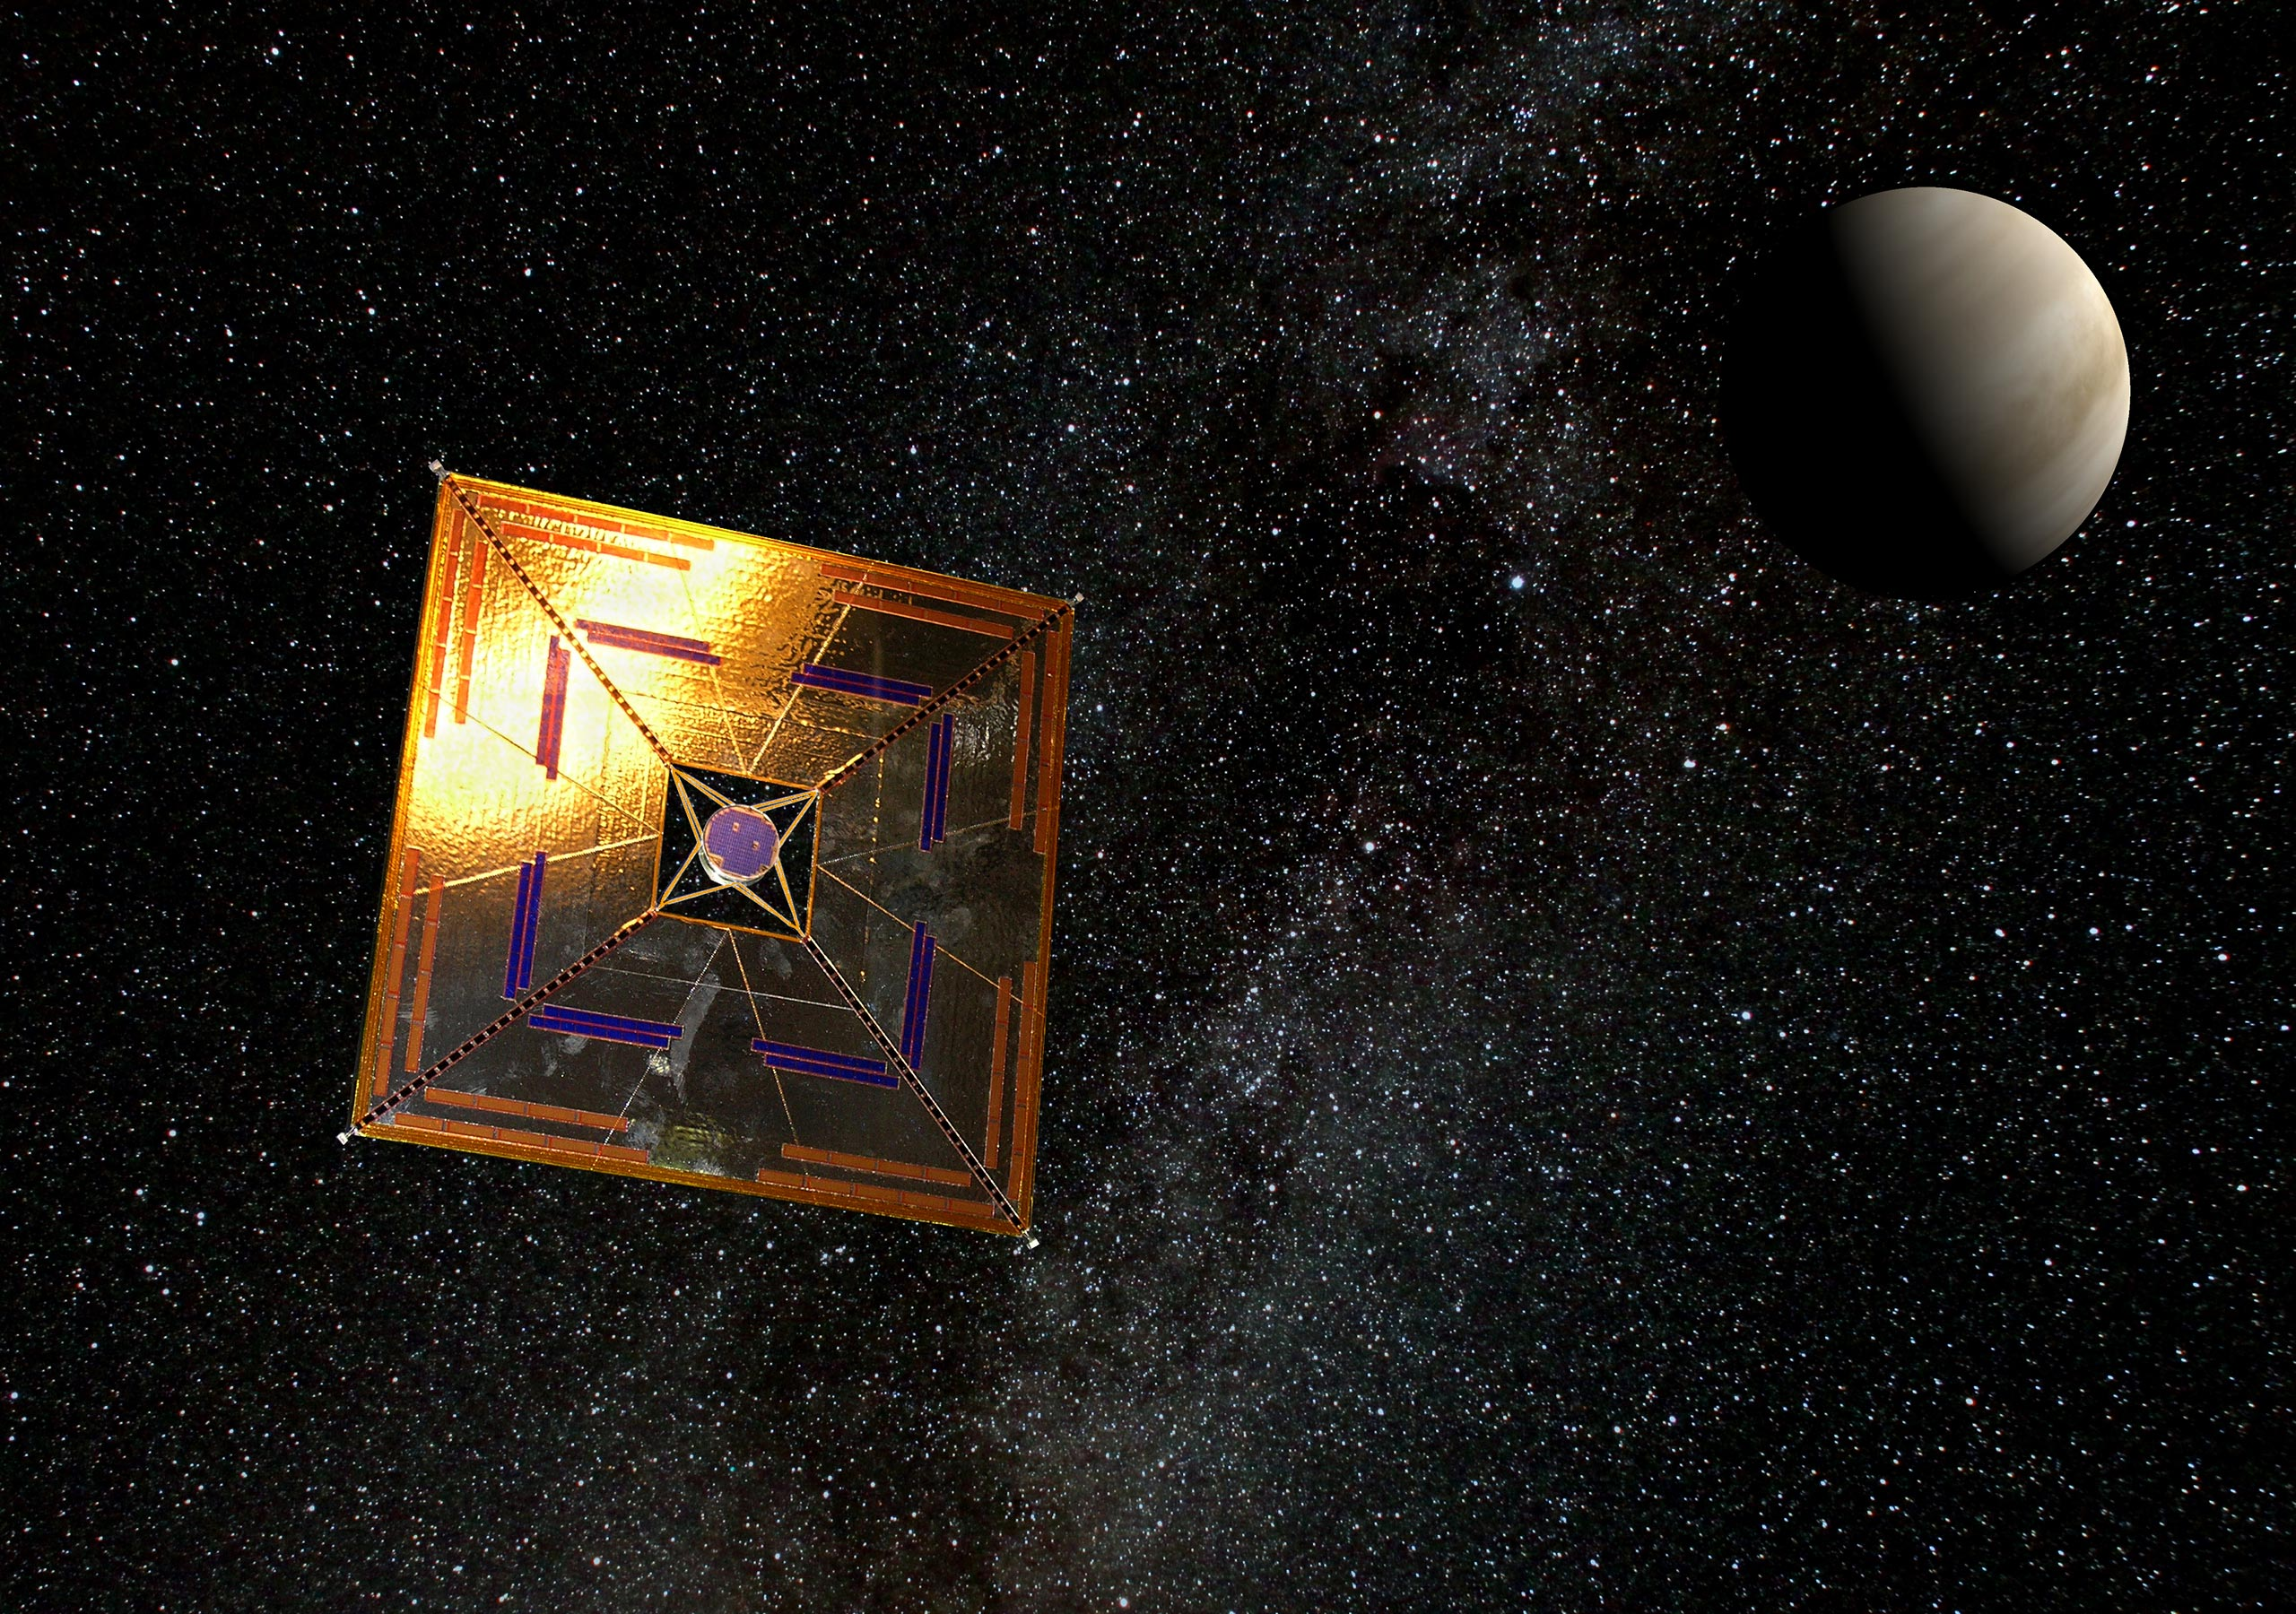 One Atom Thick Graphene Light Sail Could Speed Journey to Other Star Systems - SciTechDaily